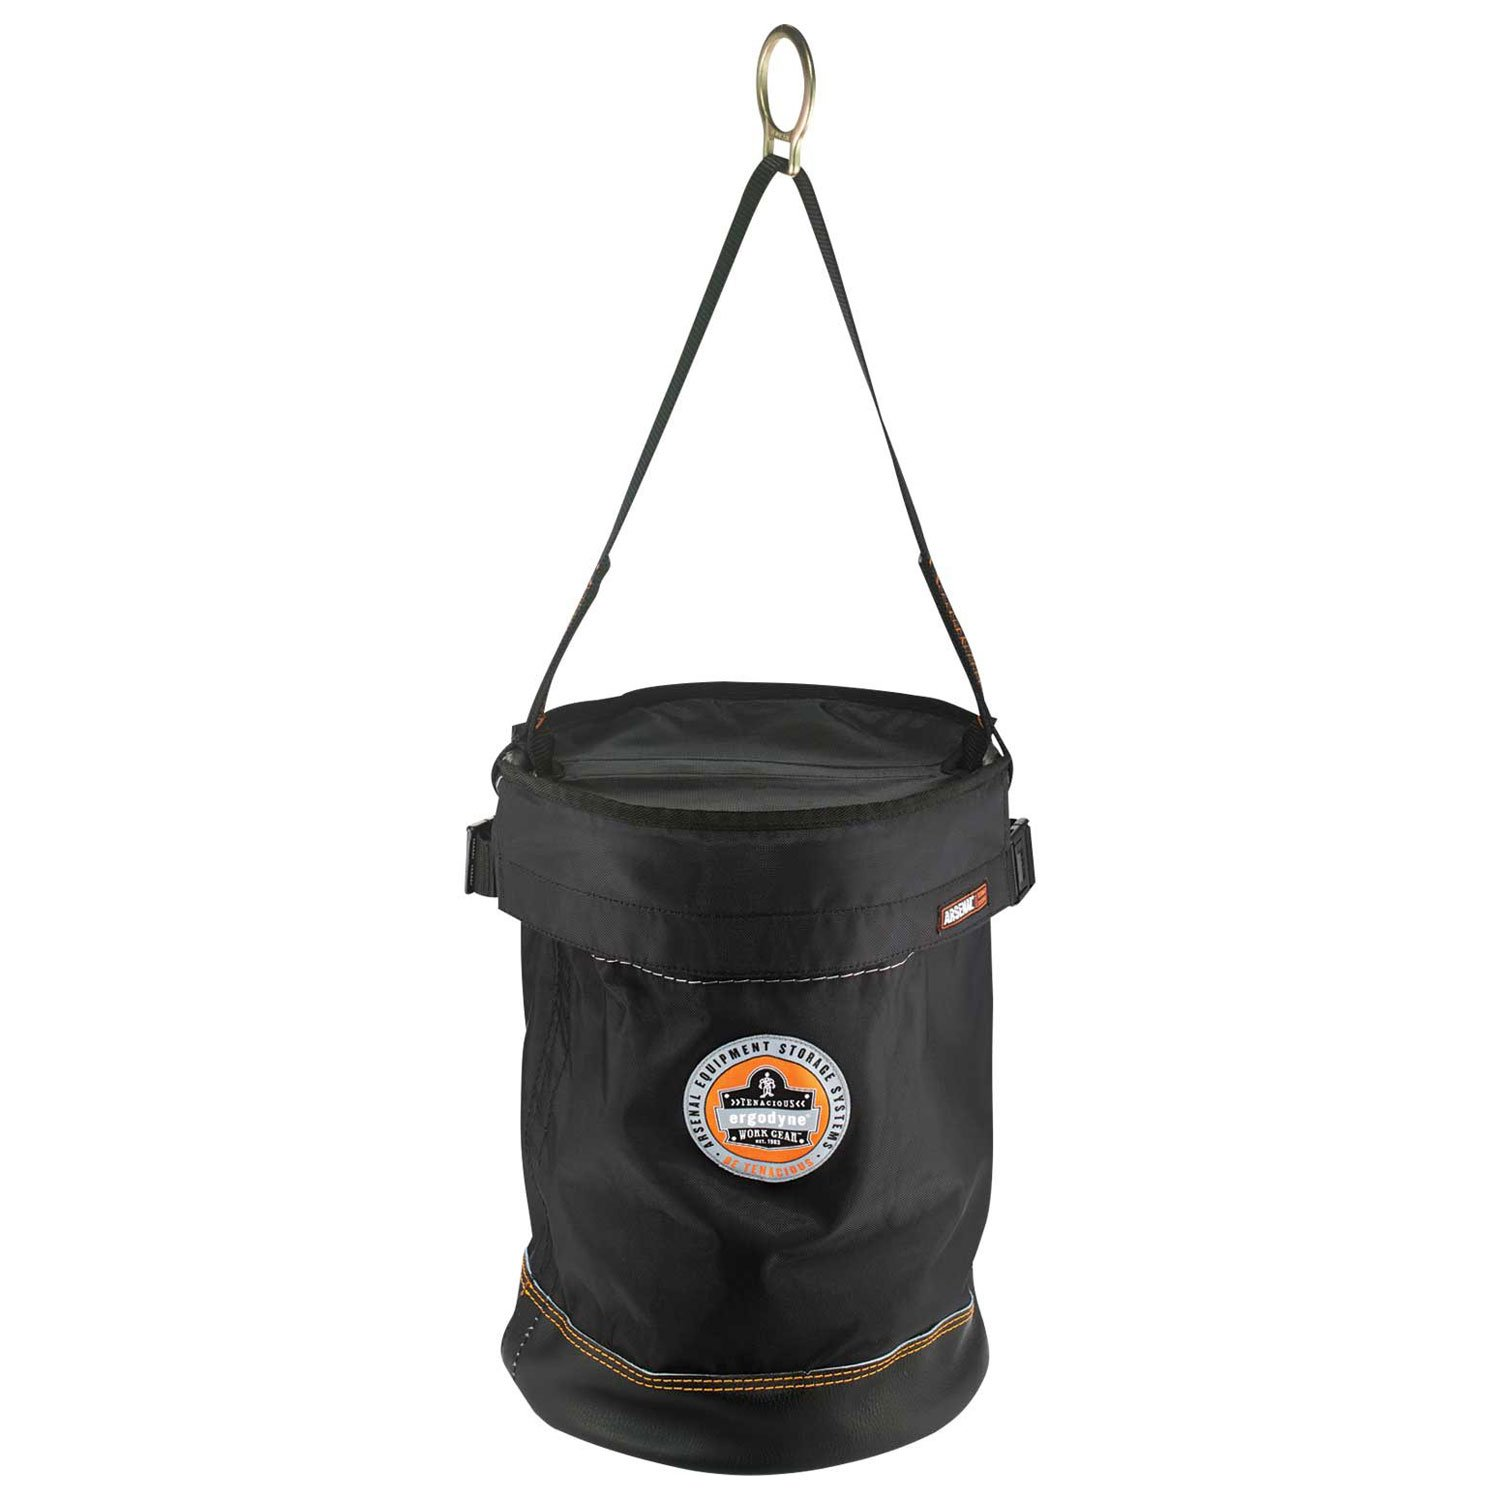 Ergodyne Arsenal 5650T Synthetic Leather Bottom Bucket-D-Ring with Top, 12.5-Inchx17-Inch, Black